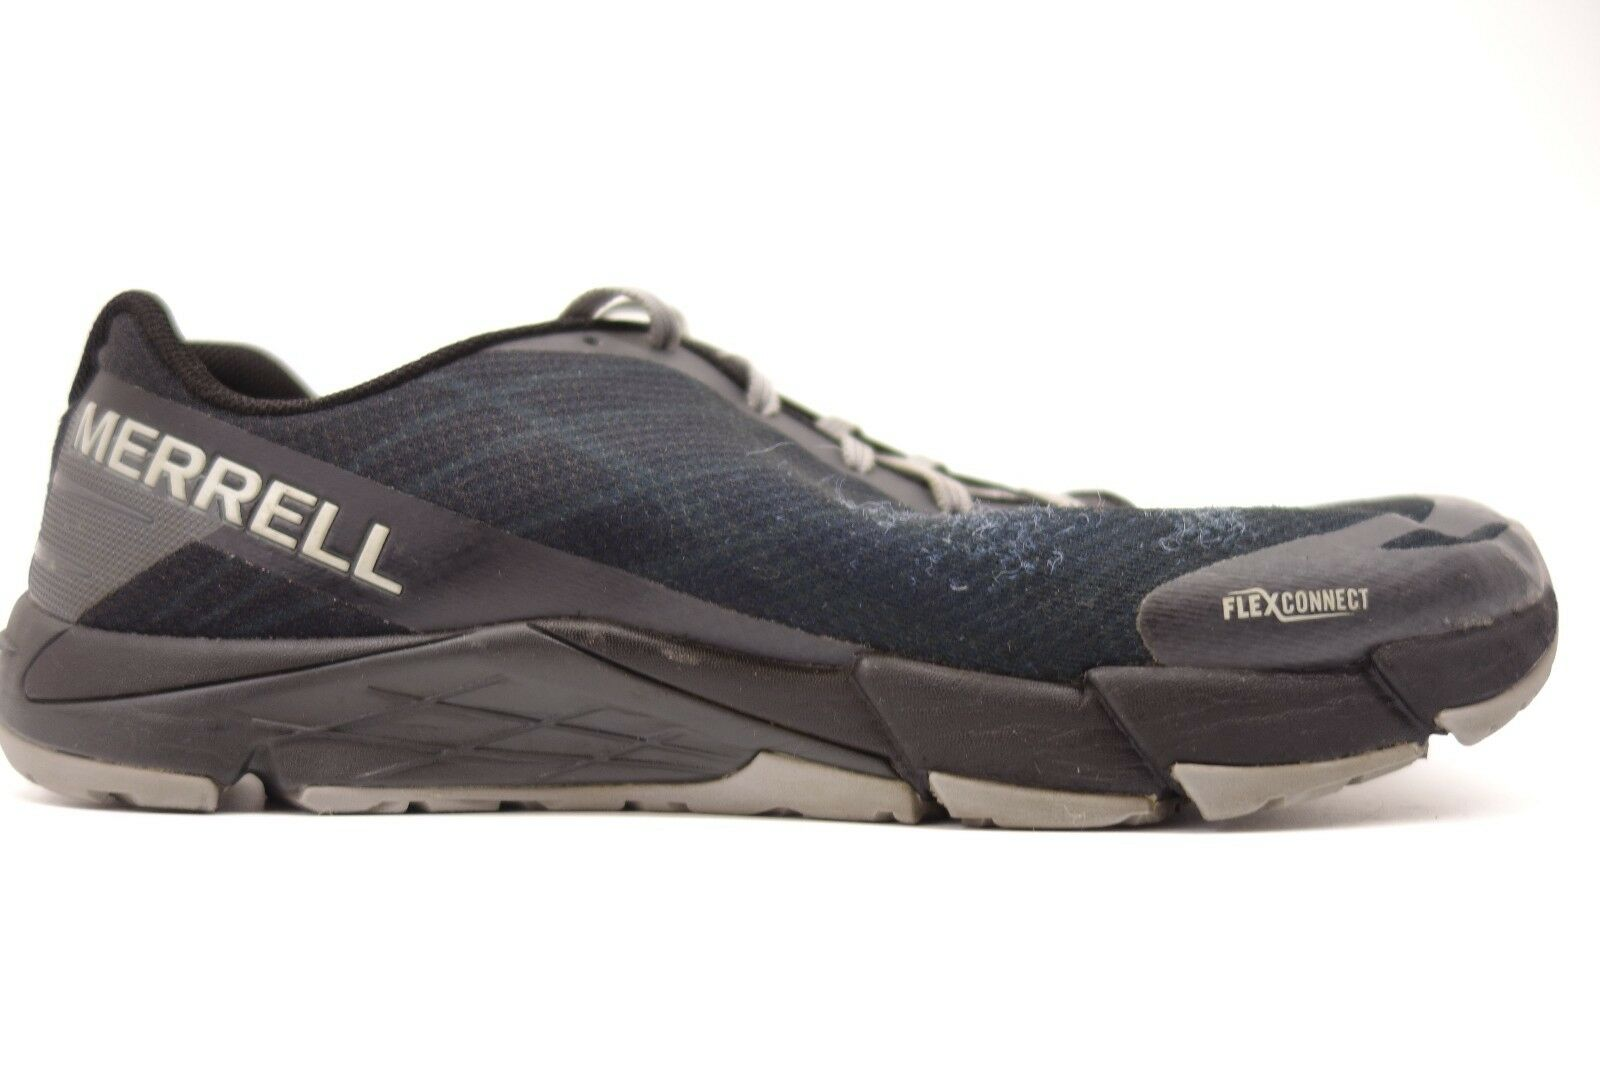 Merrell Access   Herren Bare Access Merrell Flex Mesh Athletic Hiking Trail Running Schuhes Größe 9.5 71d3bf